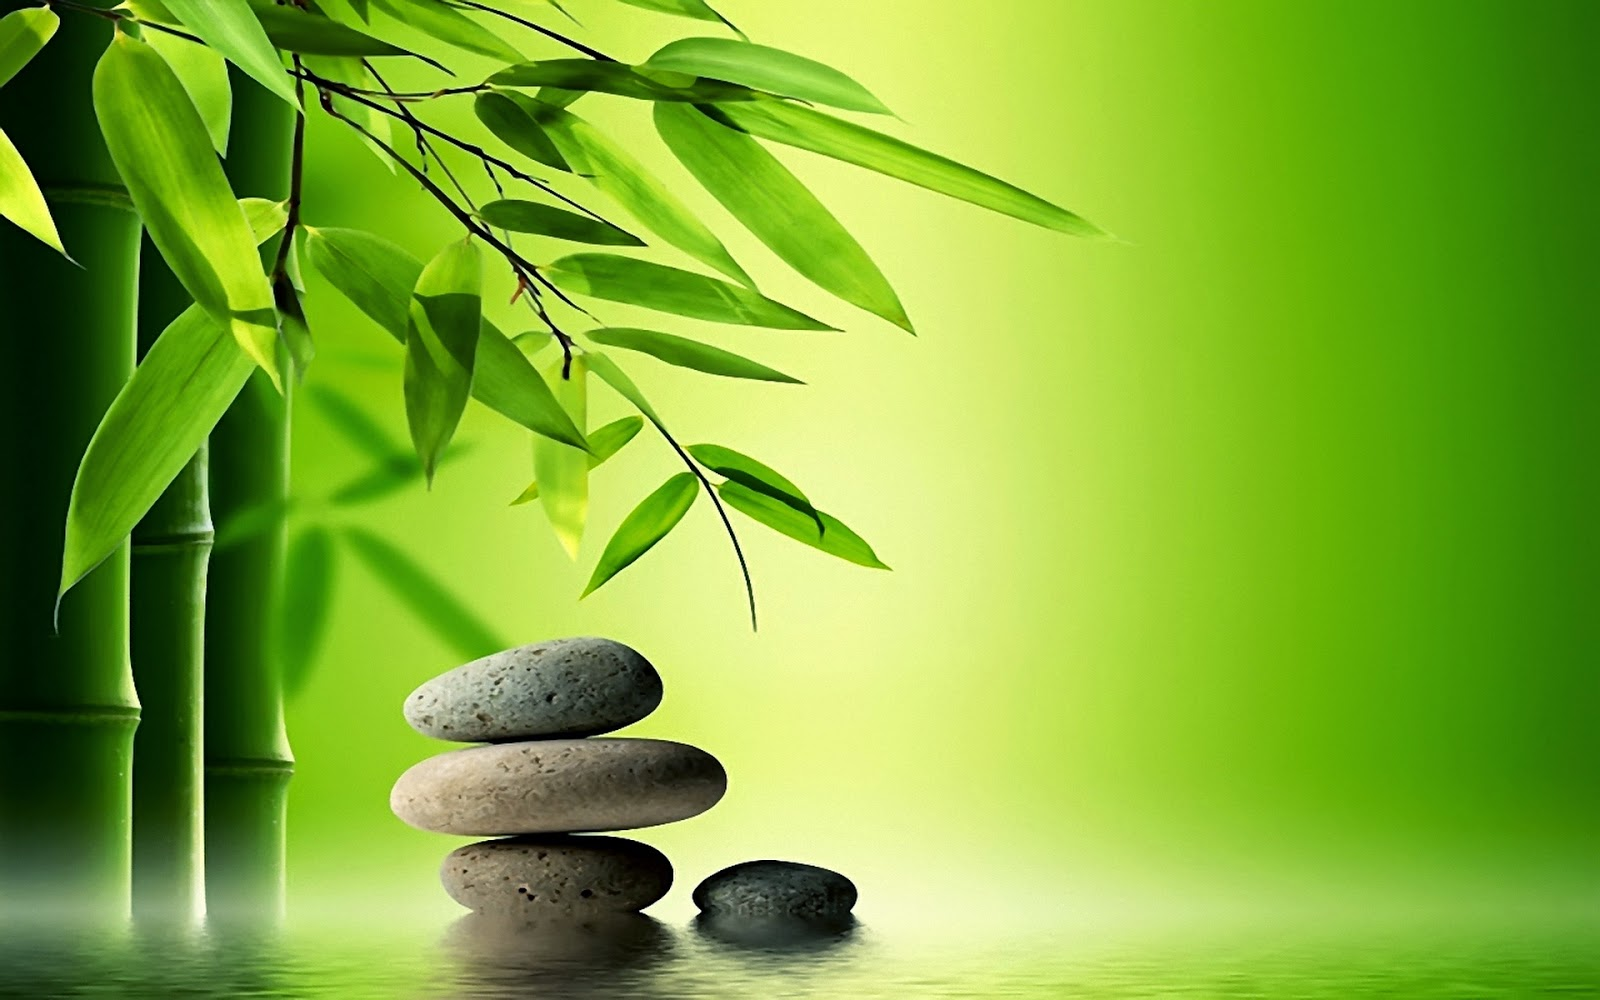 Zen-Garden-theme-pictures-1080p-HD-quality-Free-Download.jpg